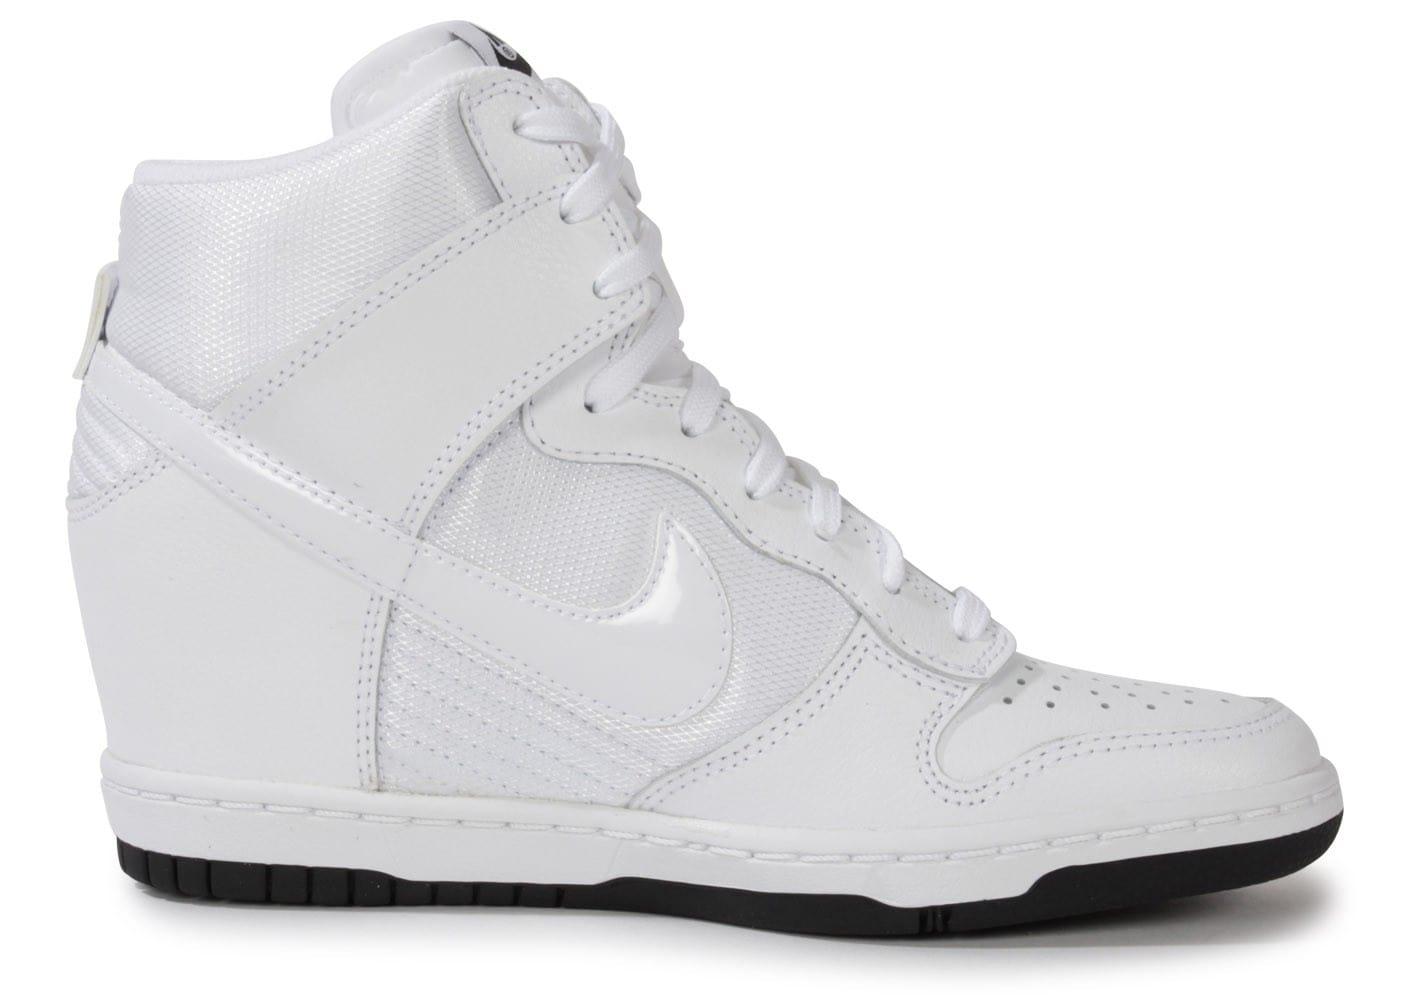 Nike Dunk Sky Hi Essential Blanche Chaussures Chaussures